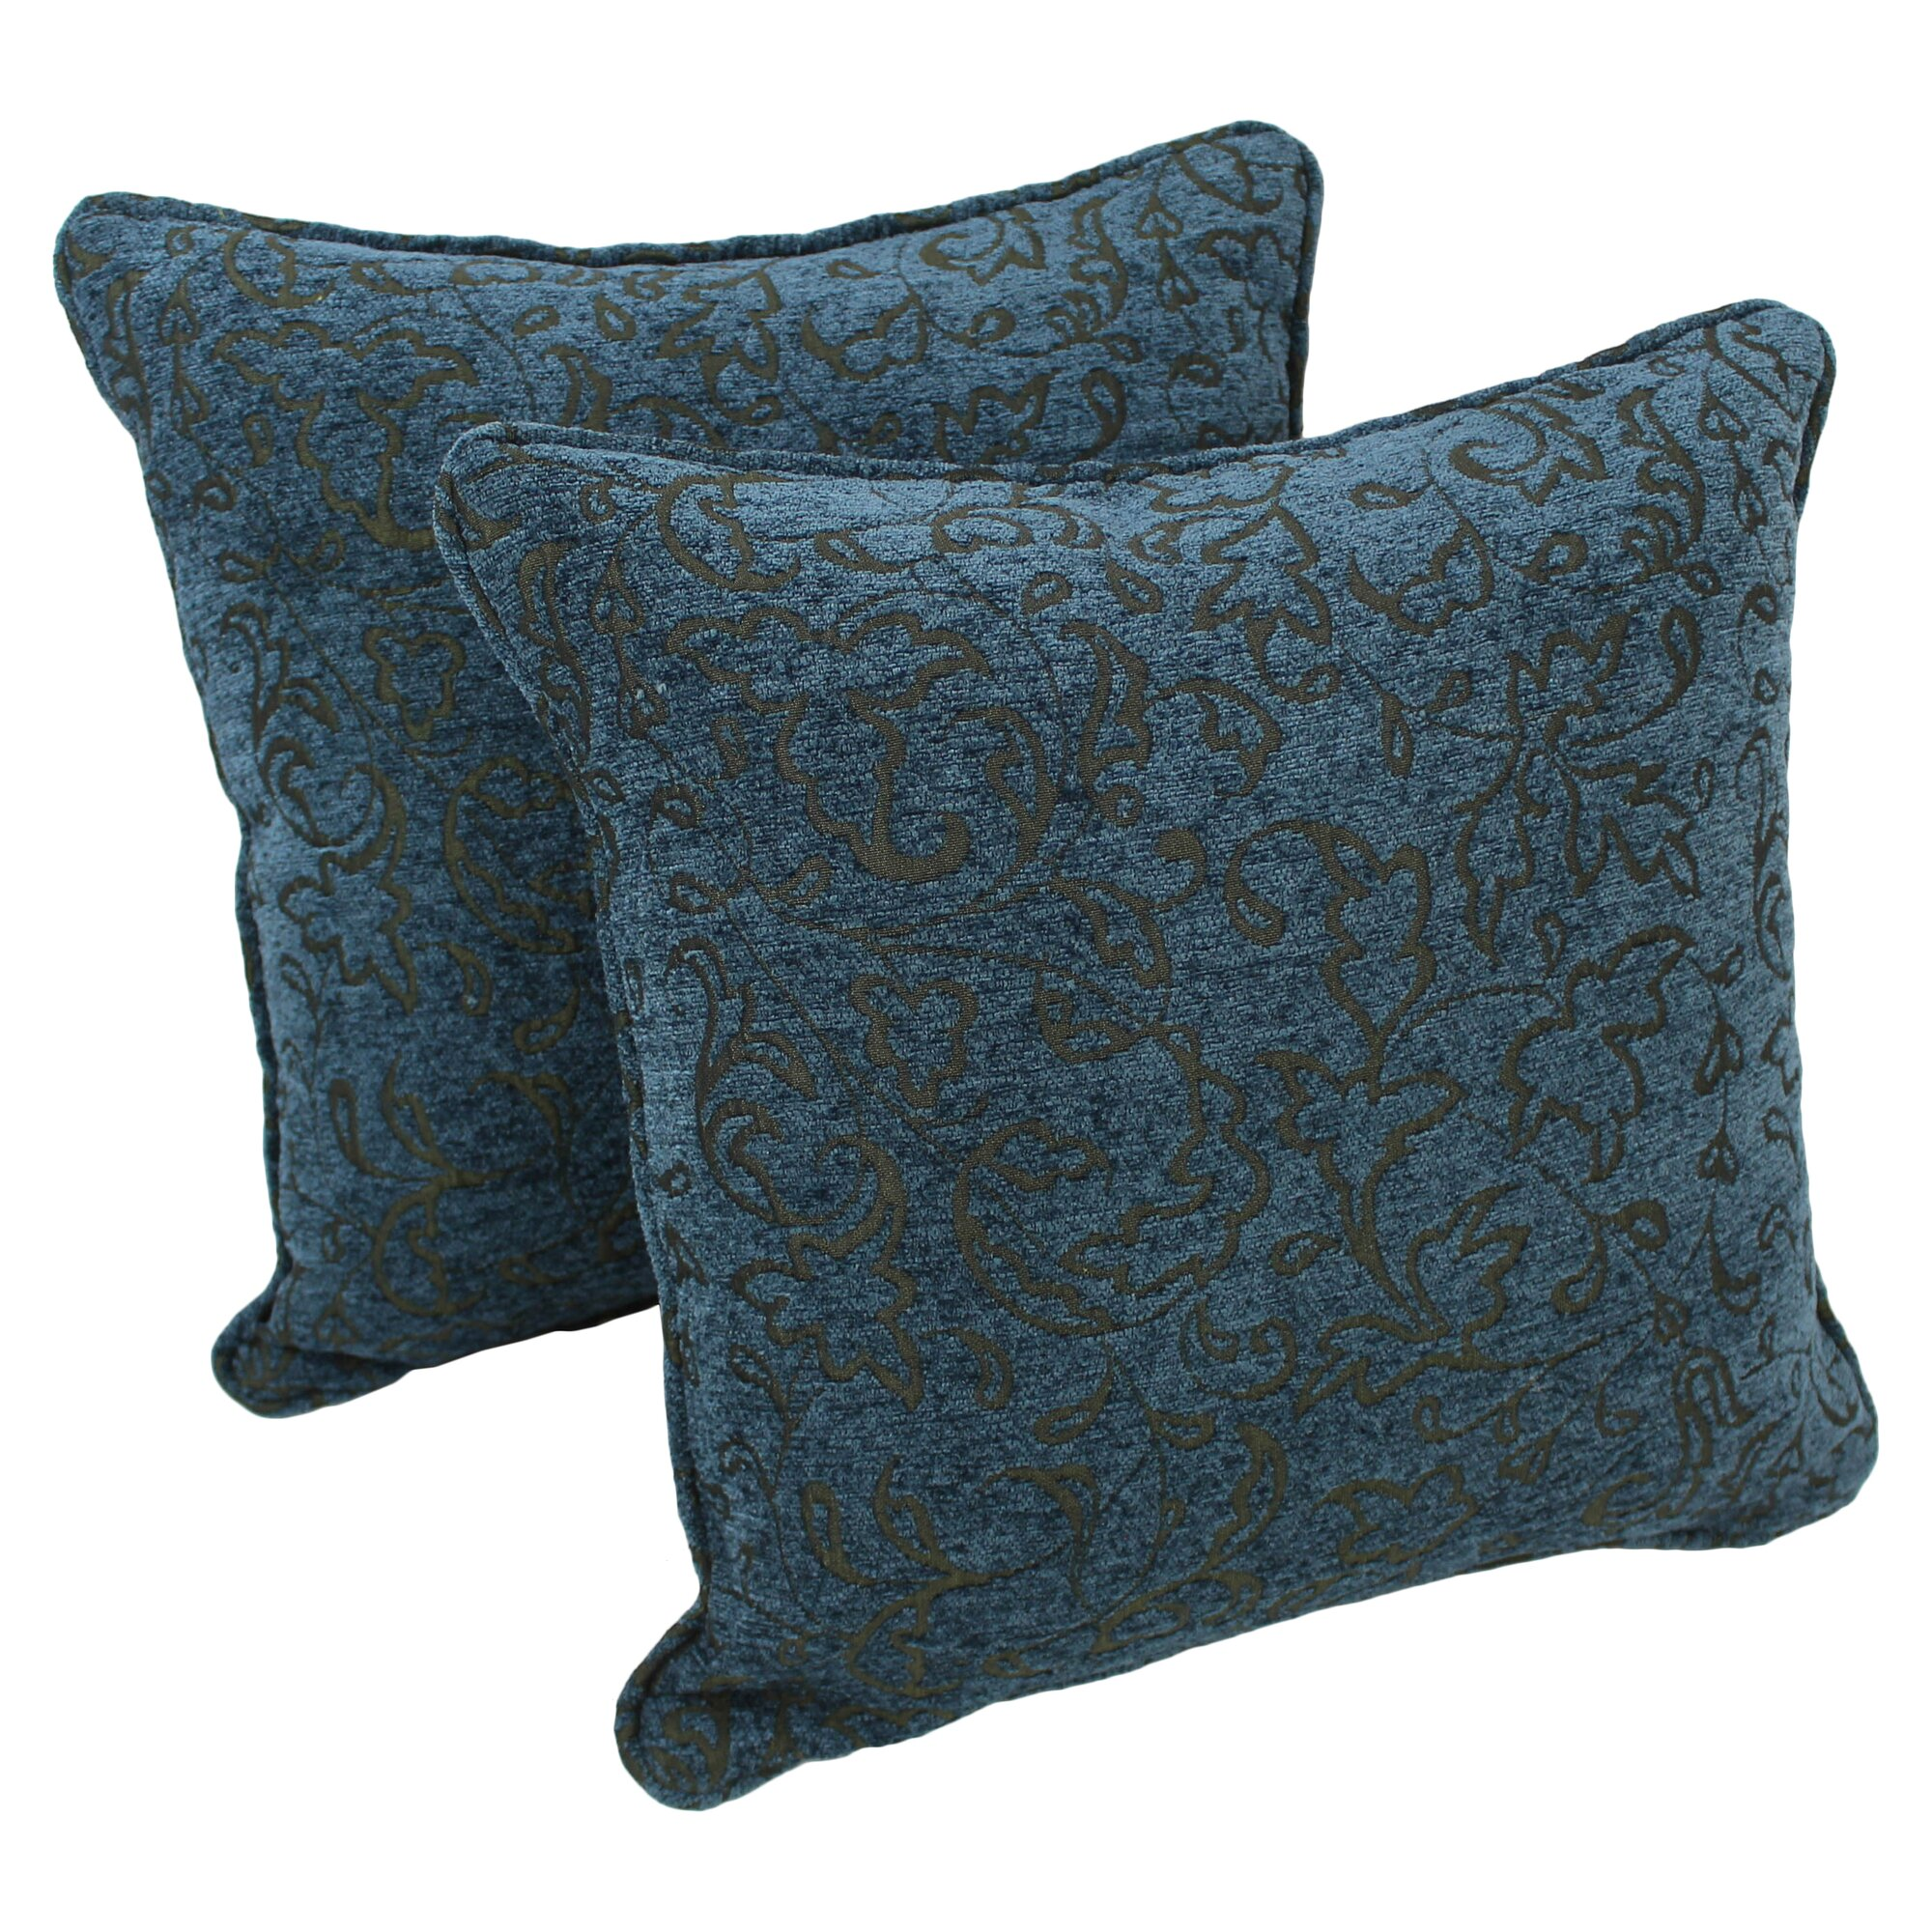 Blue Chenille Throw Pillows : Blazing Needles 18-inch Corded Blue Floral Jacquard Chenille Throw Pillow & Reviews Wayfair